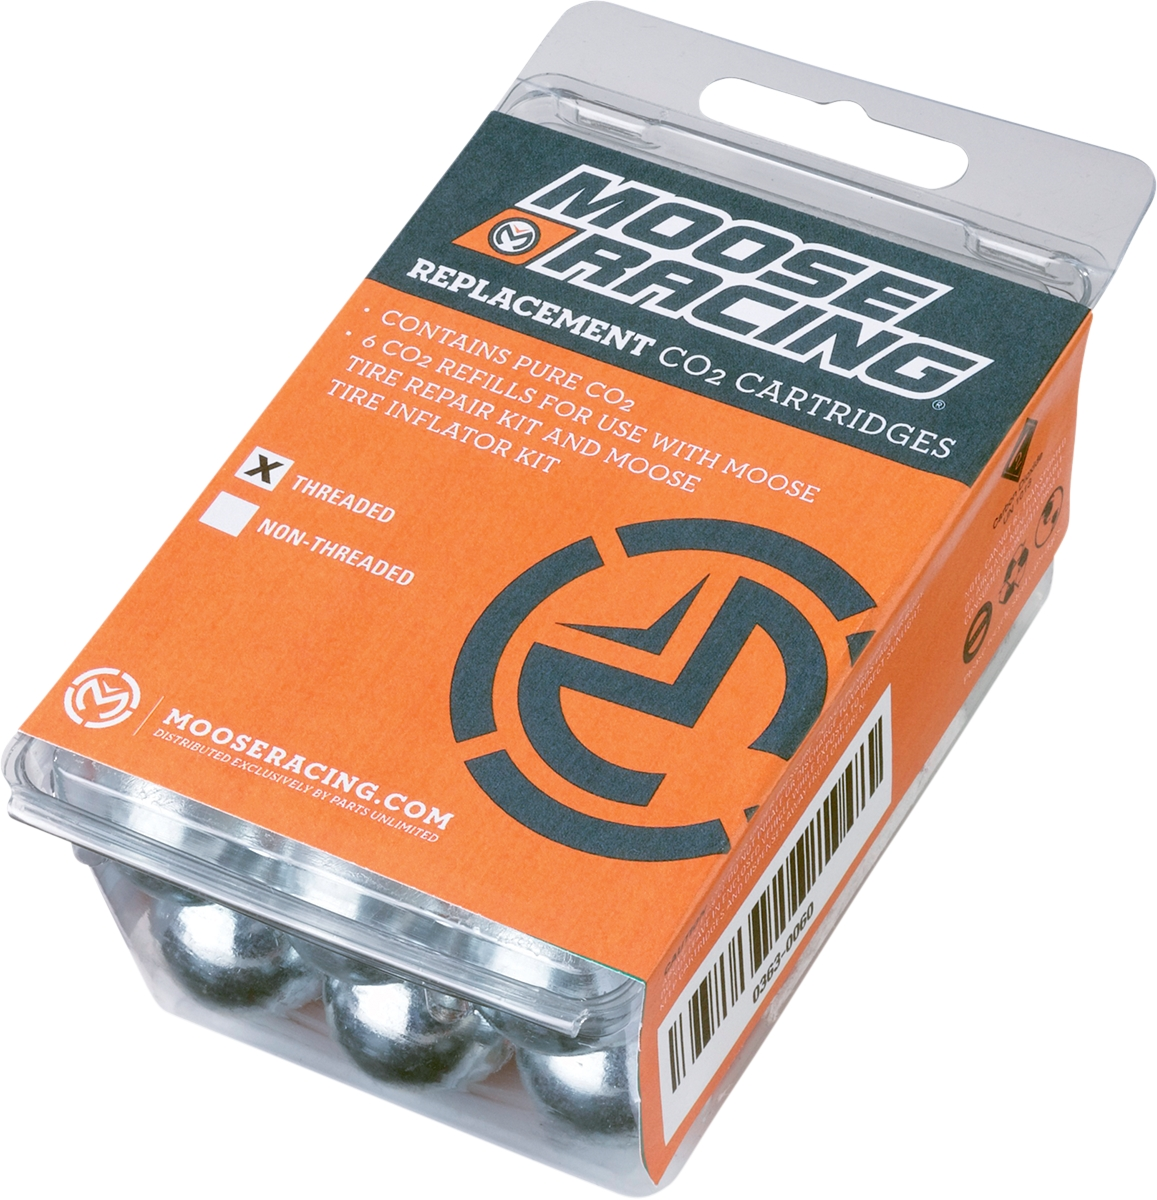 Moose Racing Replacement CO2 Non-Threaded Cartridges    0363-0061